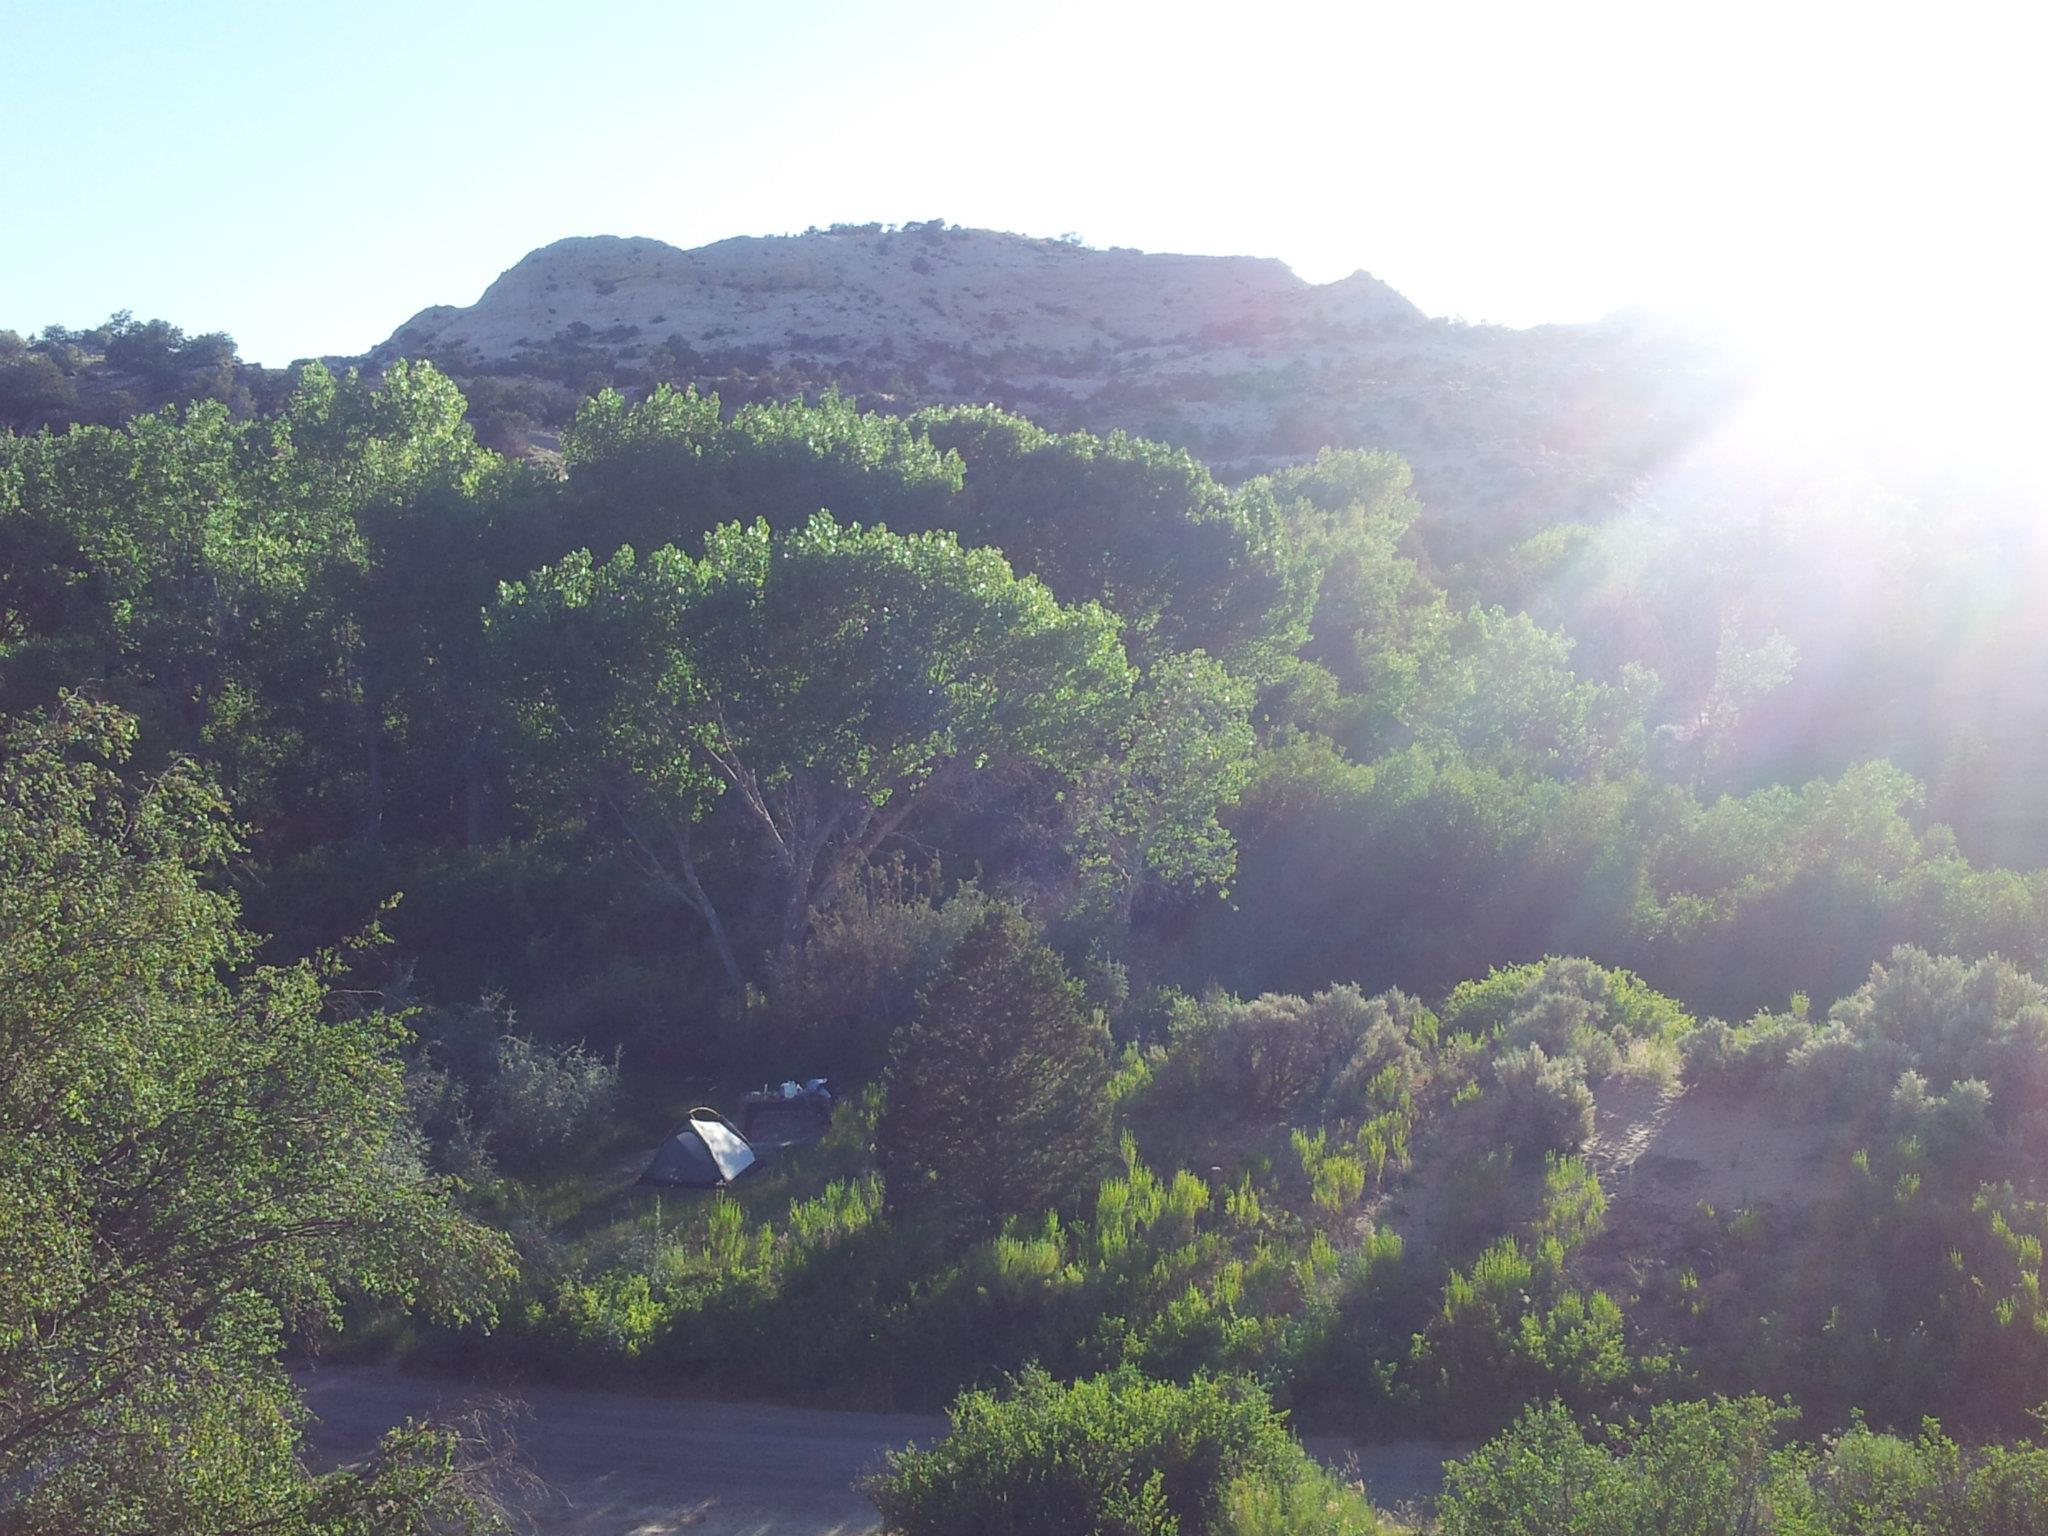 Our camp spot from a rock ledge we climbed up